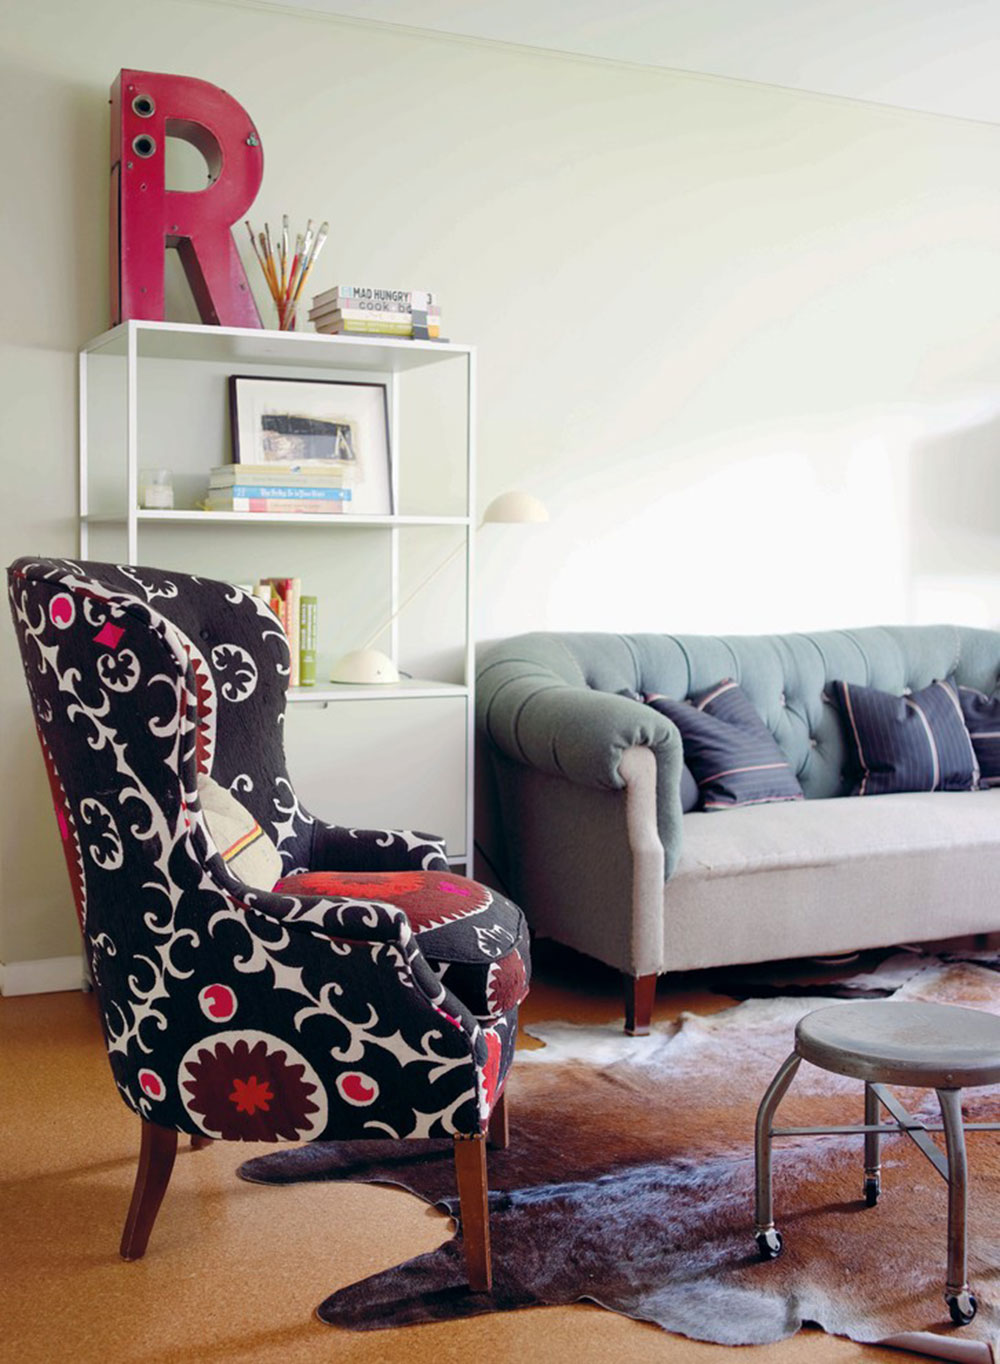 Modern-Vintage-by-Emily-Chalmers-by-Emily-Chalmers-Caravan-Style-Ltd Tips on adding a wing chair to your room